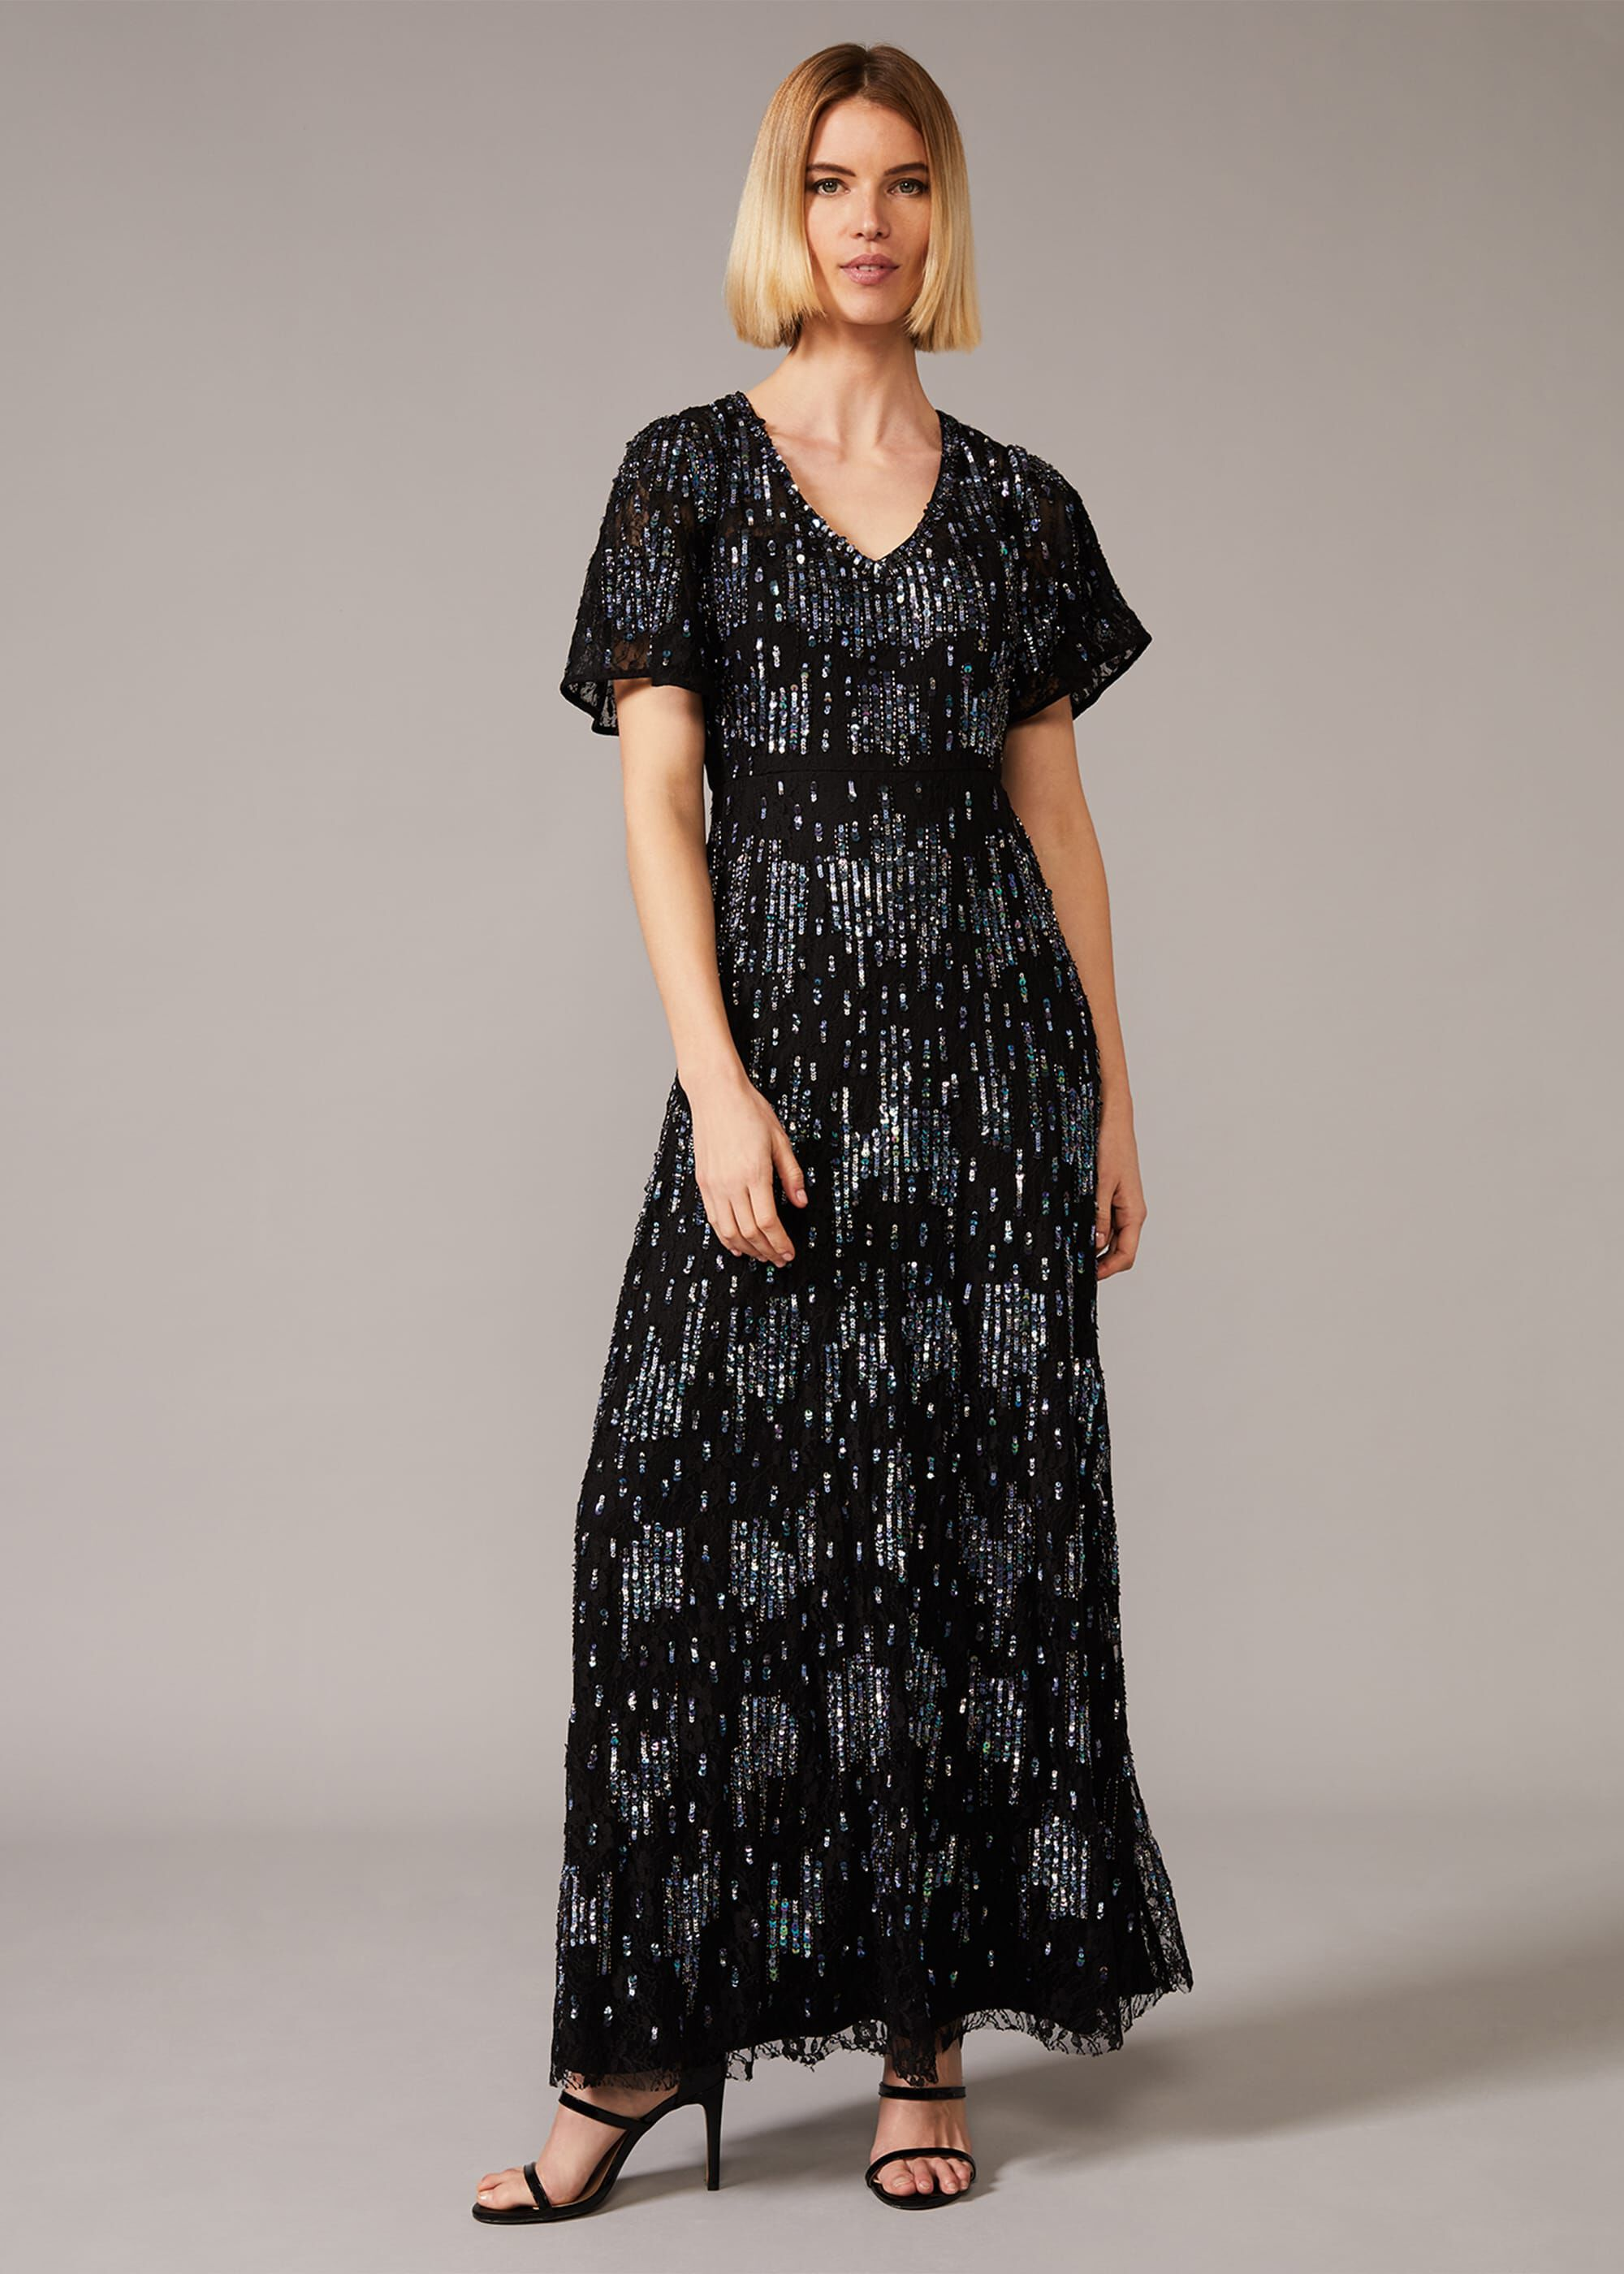 Phase Eight Clarabelle Sequin Embelished Maxi Dress, Multicoloured, Maxi, Occasion Dress